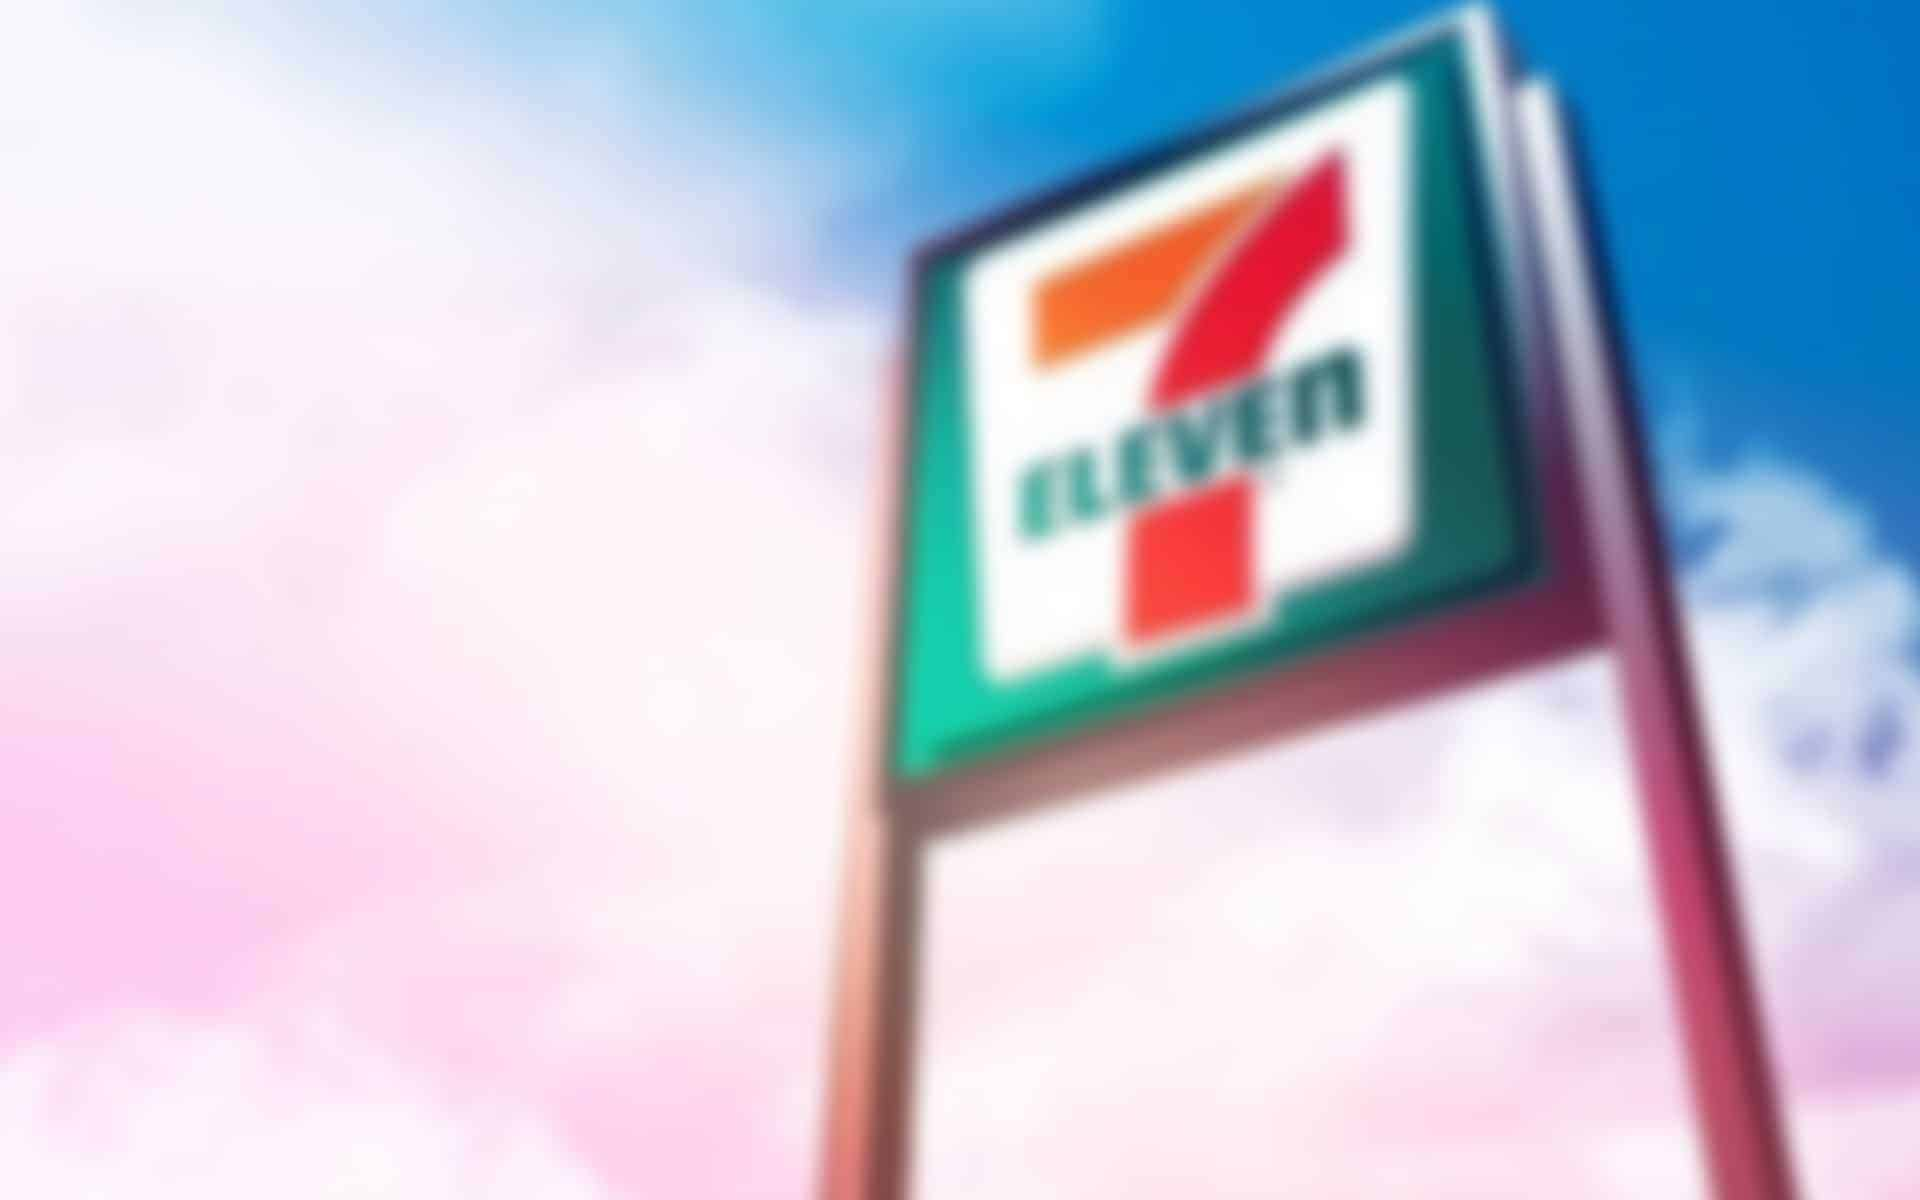 Chiang Mai 7-Eleven is a Digital Nomad's Best Friend